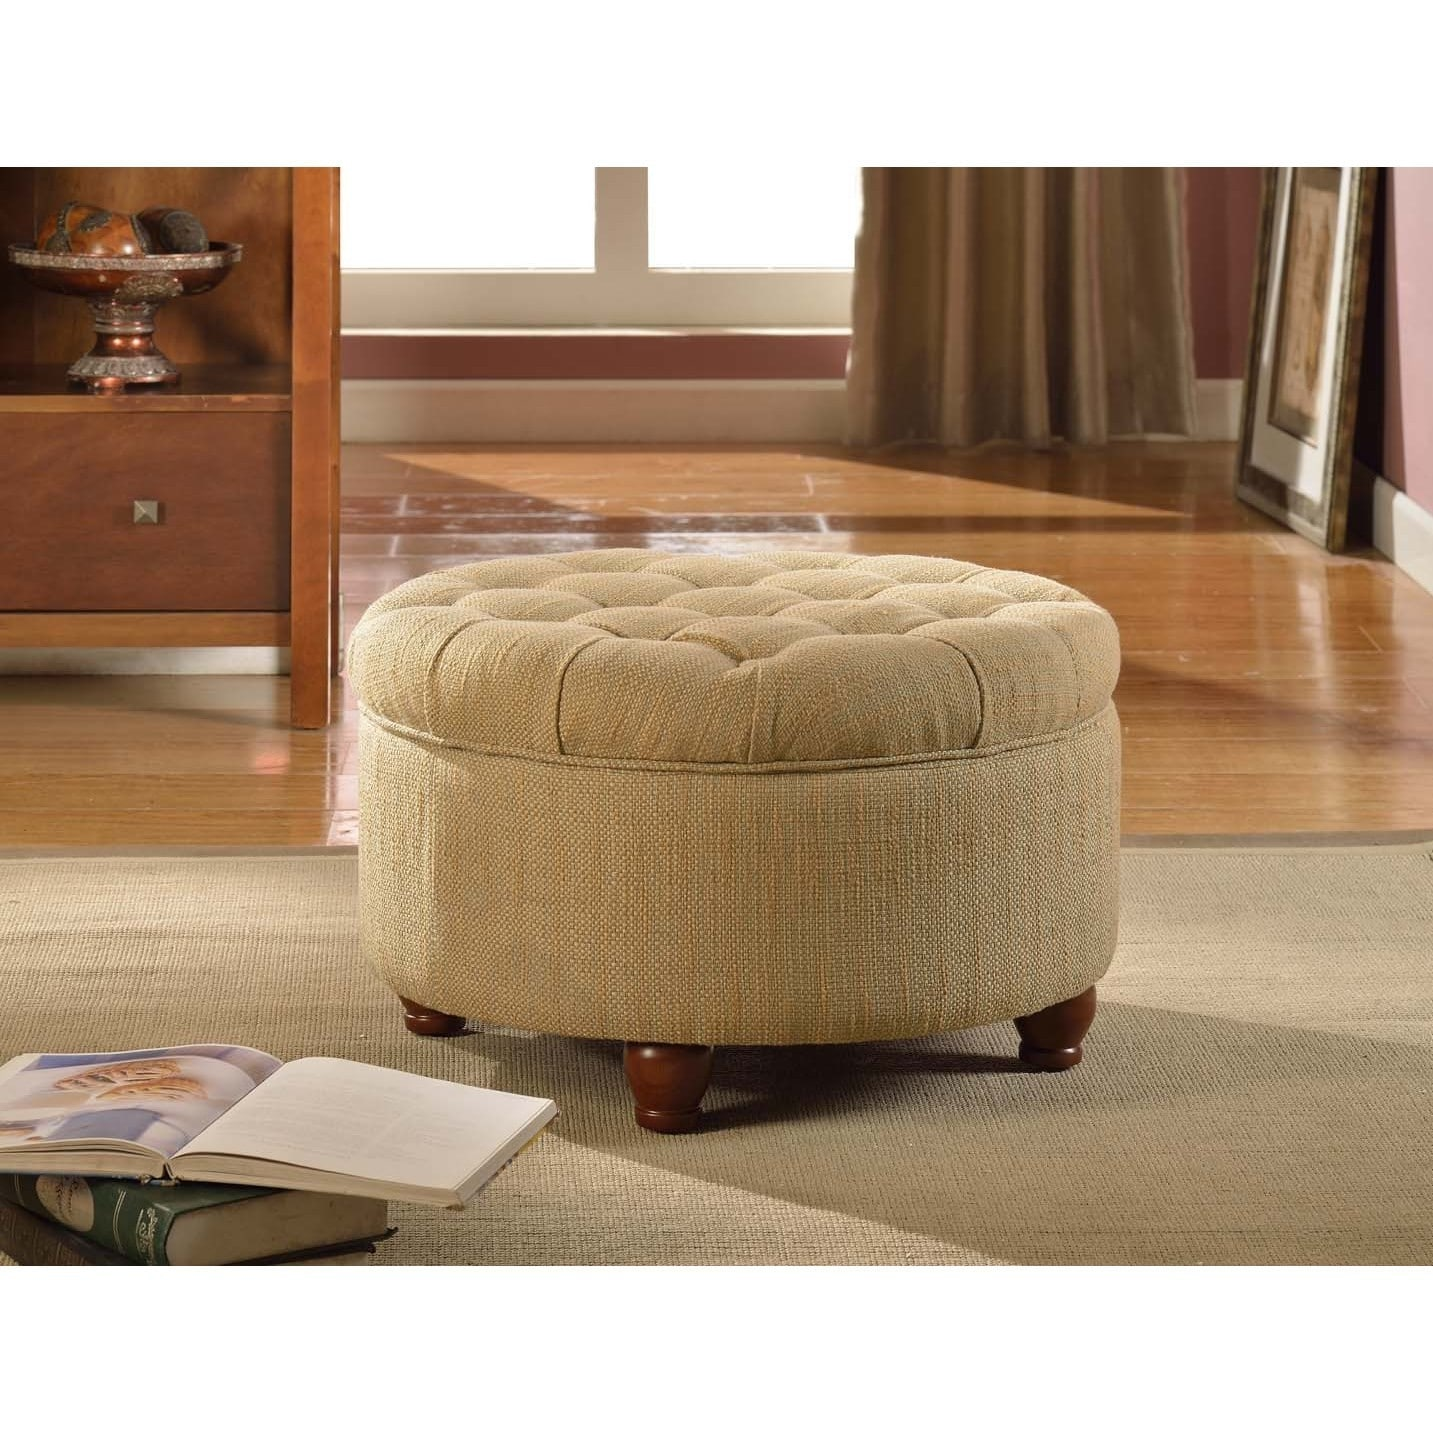 Shop Laurel Creek Florence Tan And Cream Tweed Tufted Storage Ottoman   On  Sale   Free Shipping Today   Overstock.com   19856156